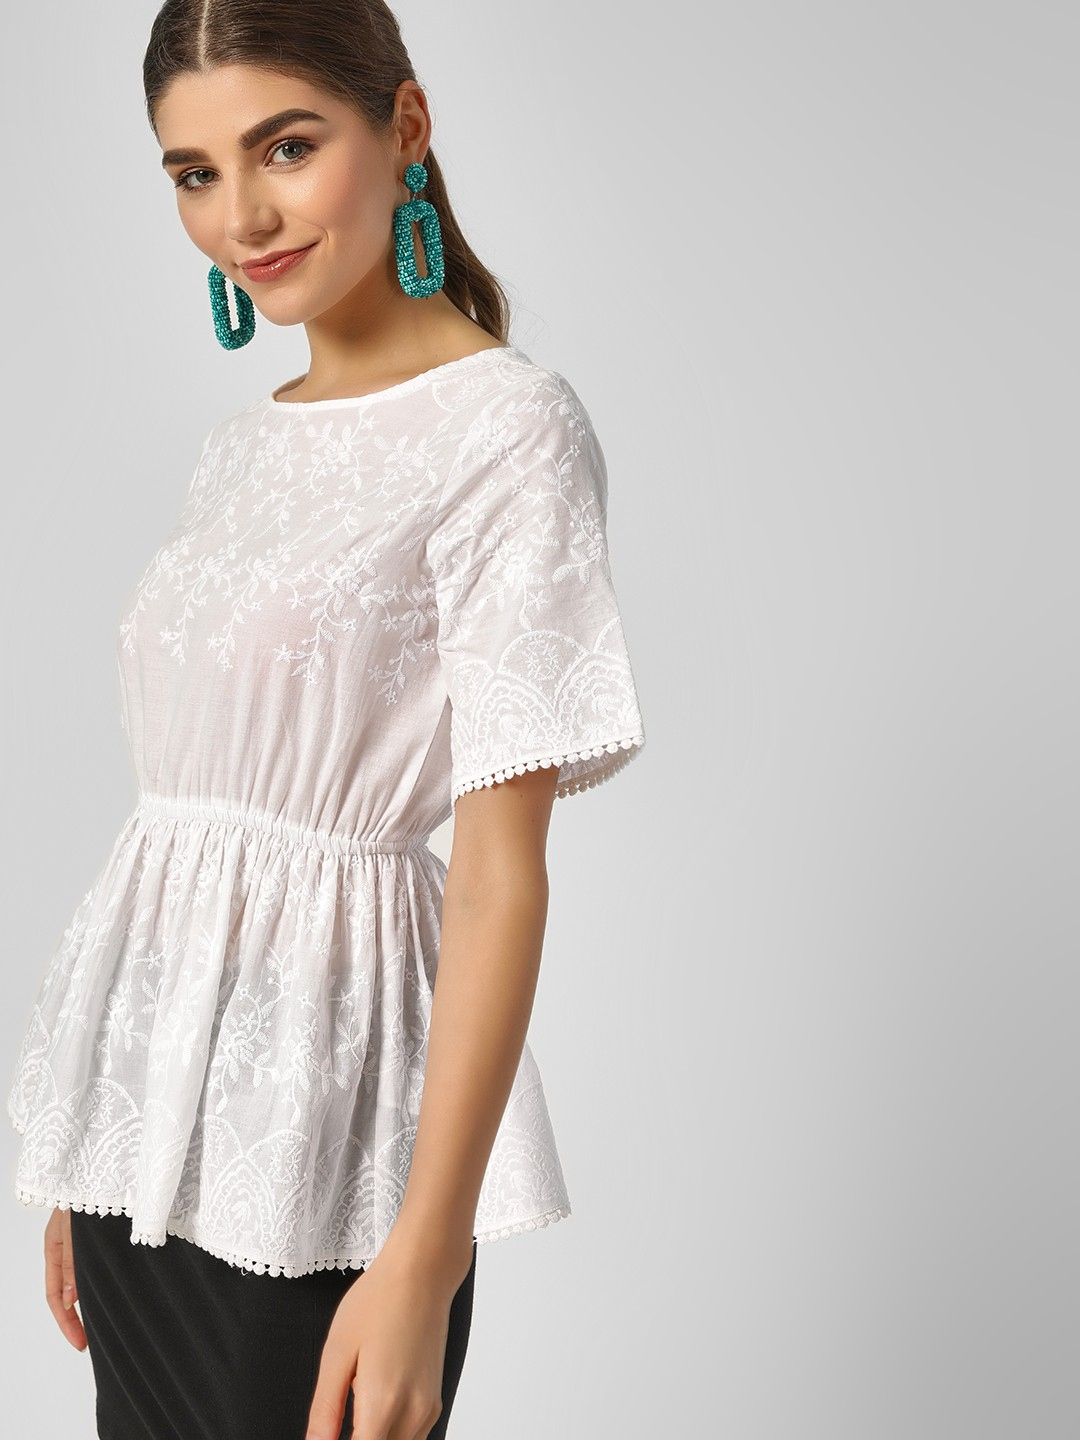 HEY Off White Sleeved Scallop Hem Lace Top 1